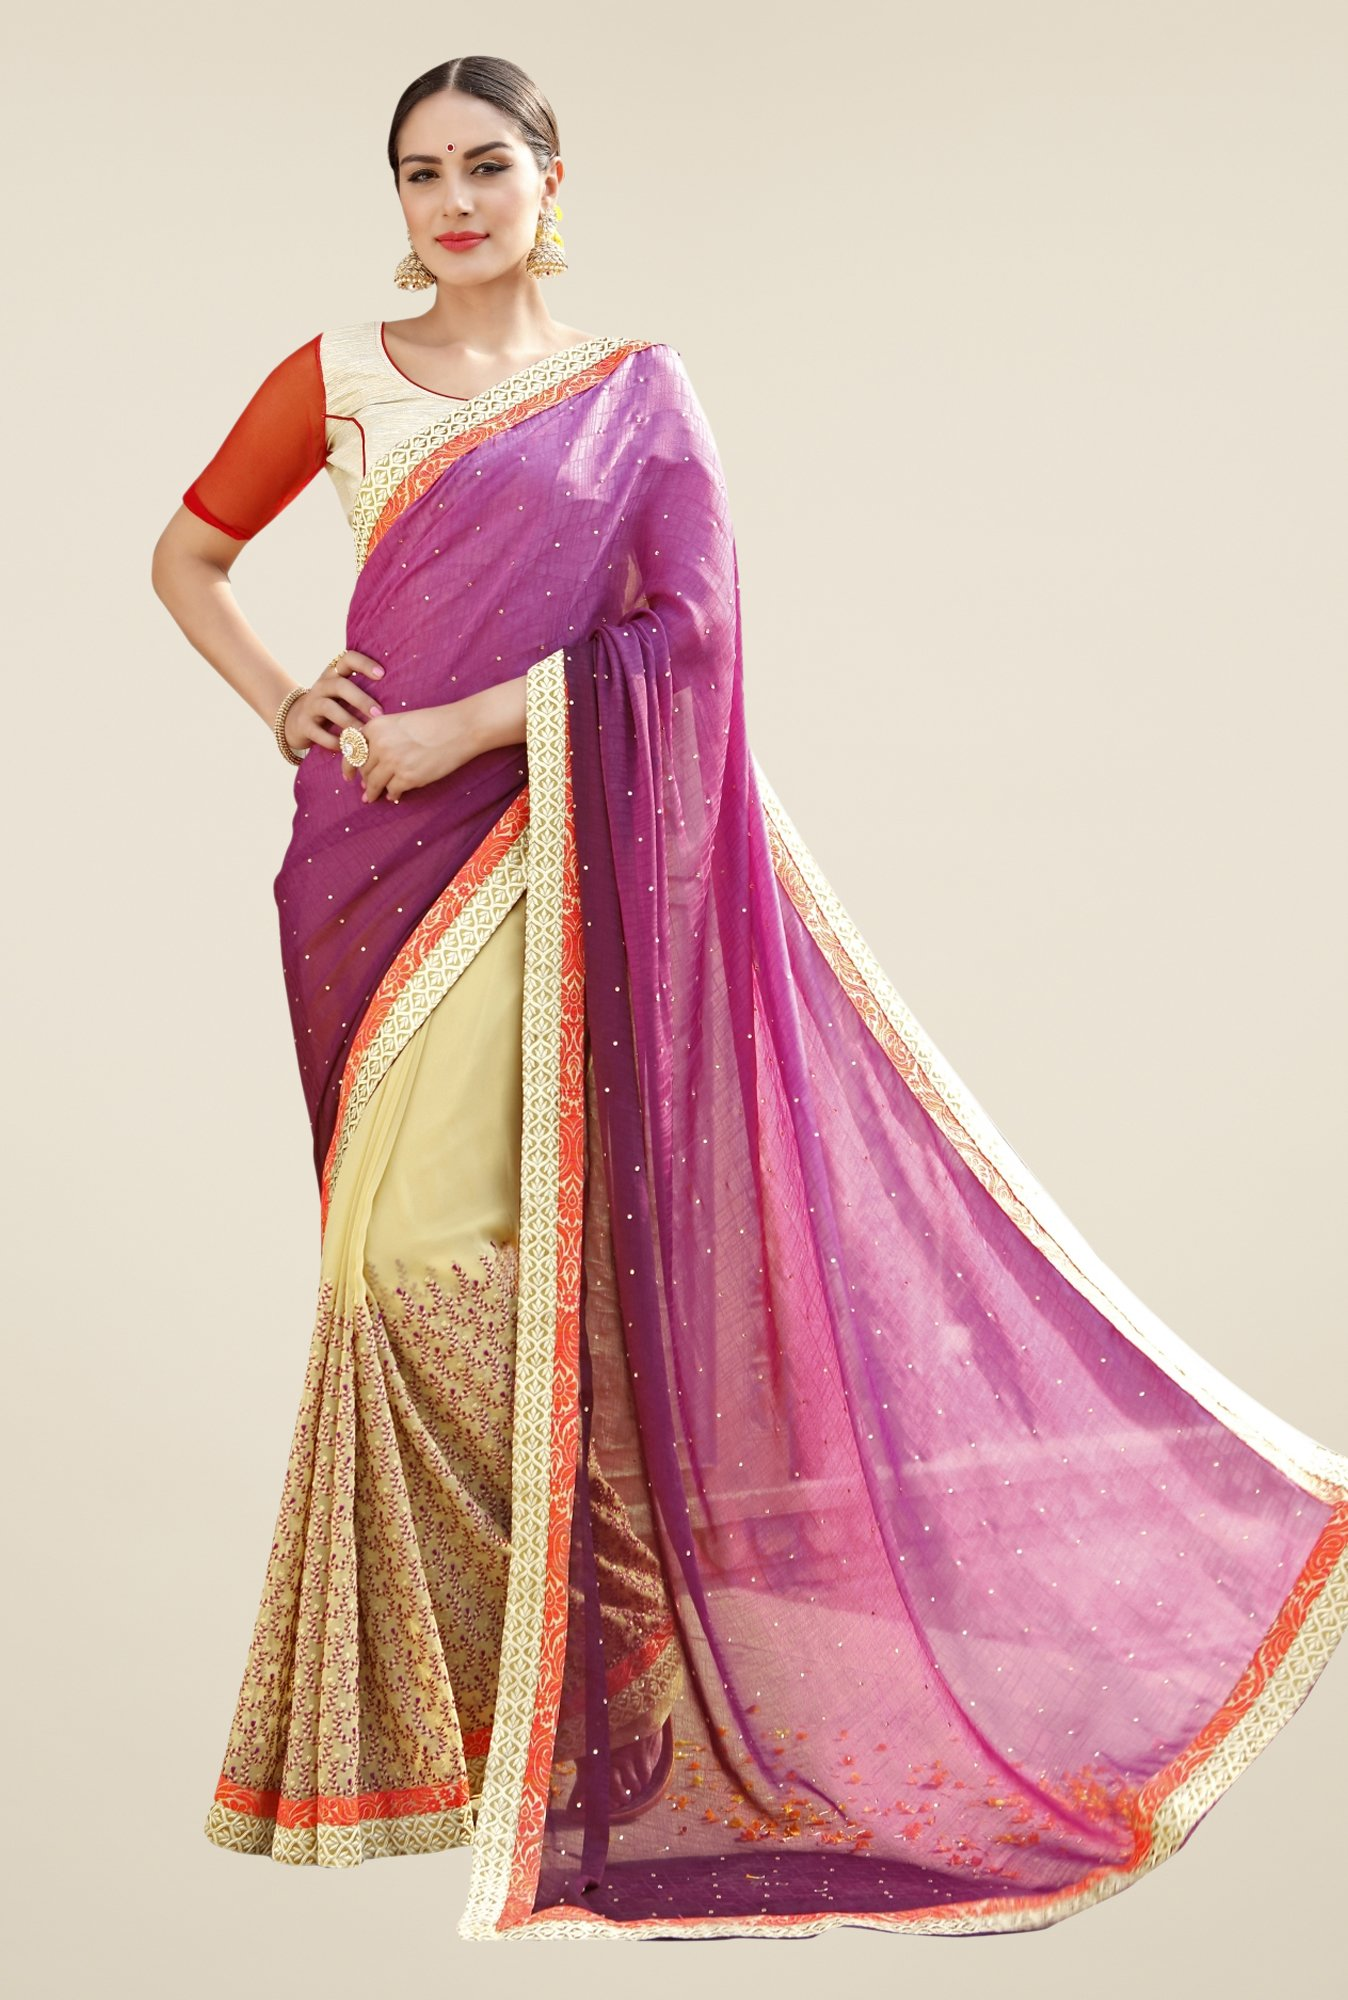 Triveni Beige & Purple Embroidered Faux Georgette Saree